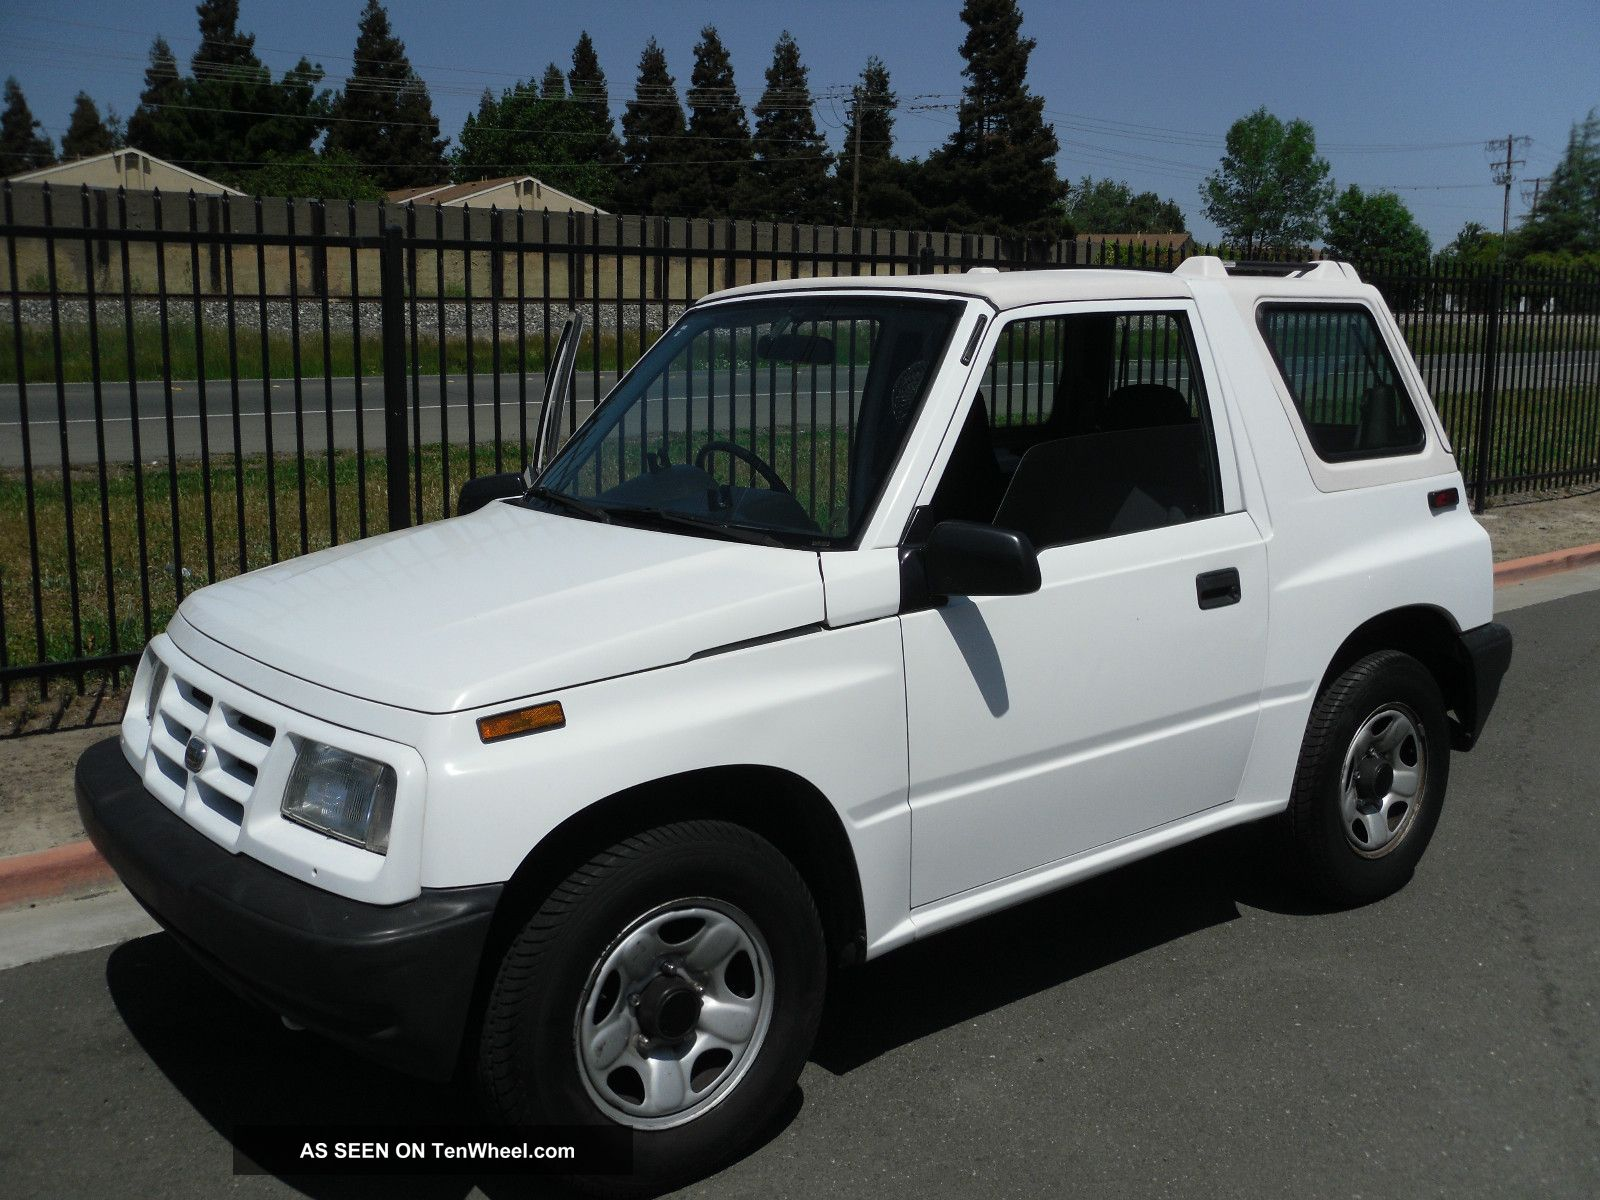 1997 Geo Tracker Right Hand Drive Geo photo